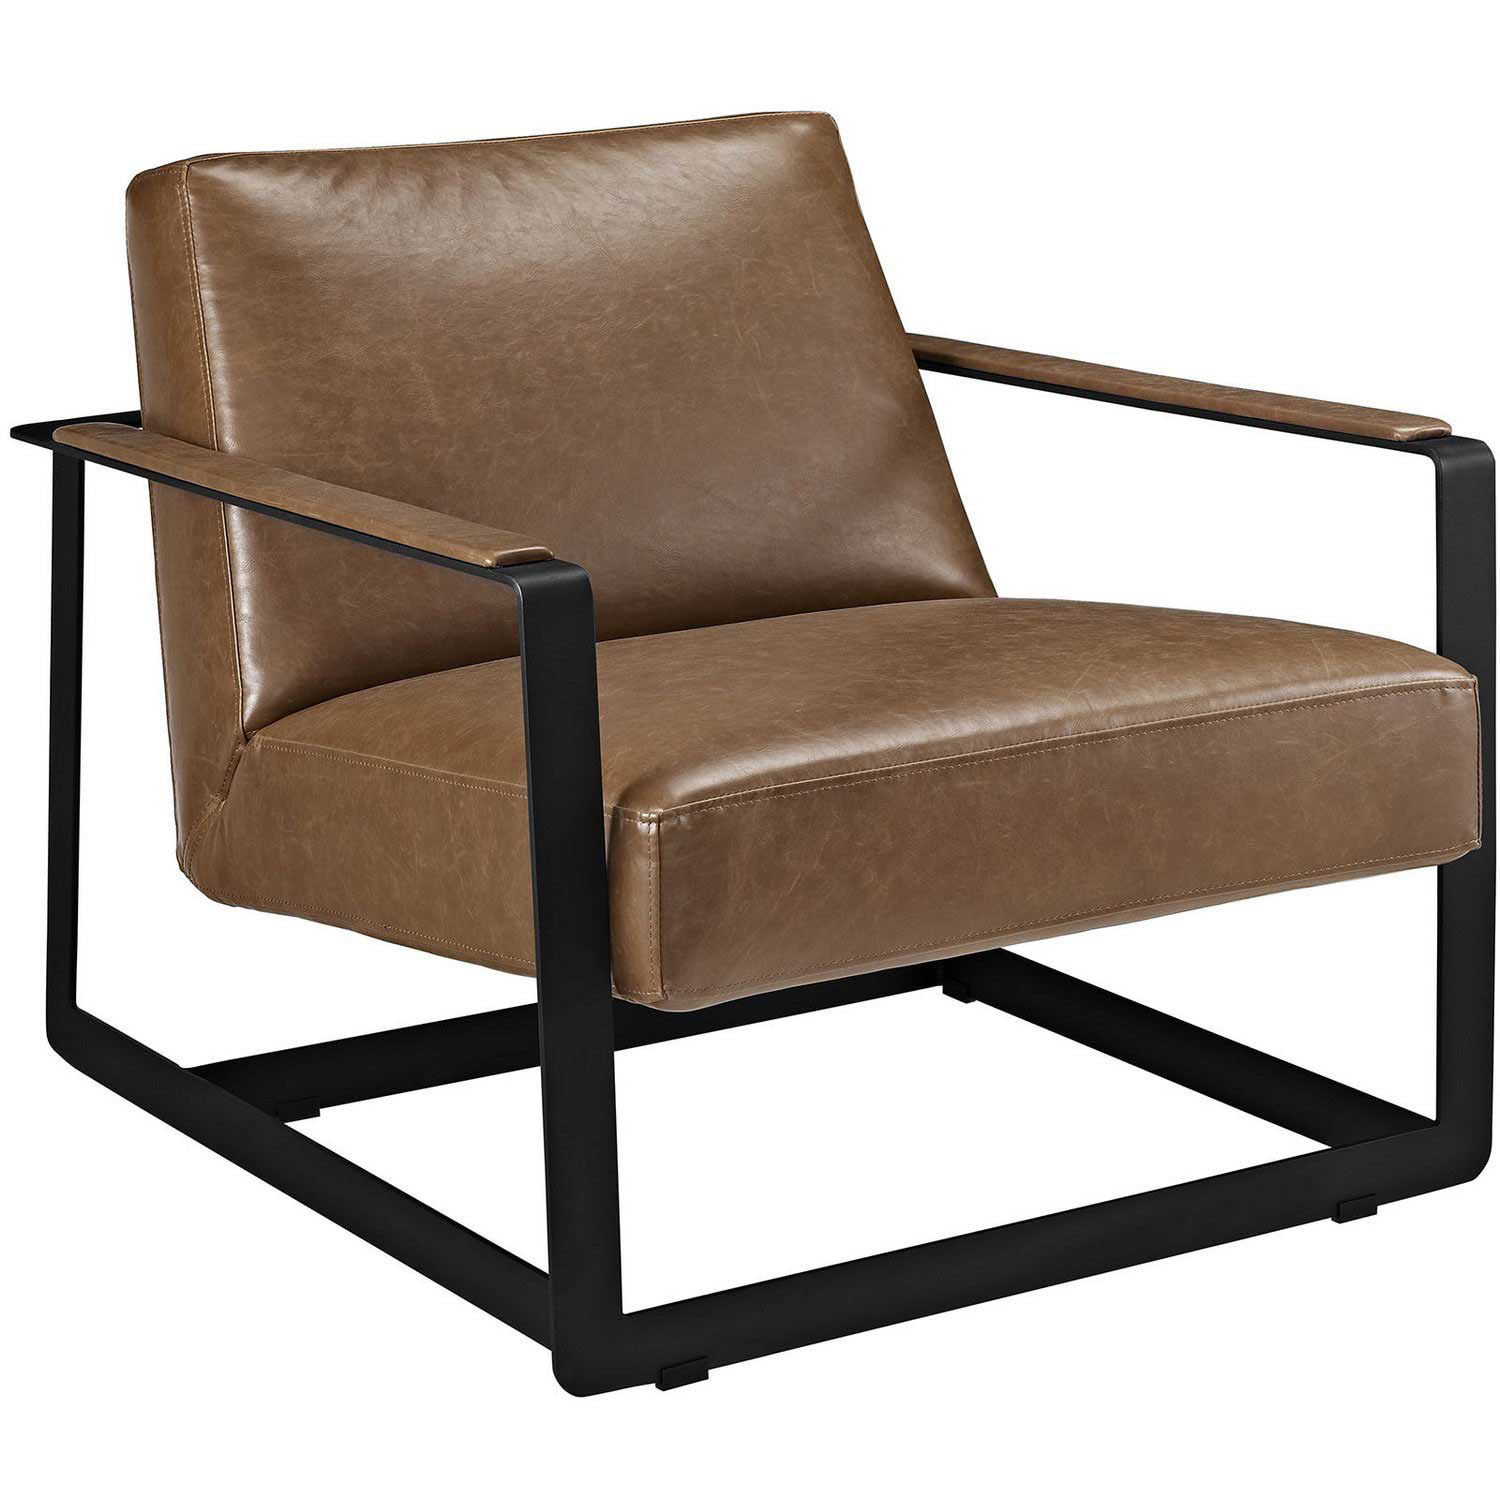 Modway Seg Bonded Leather Accent Chair - Brown